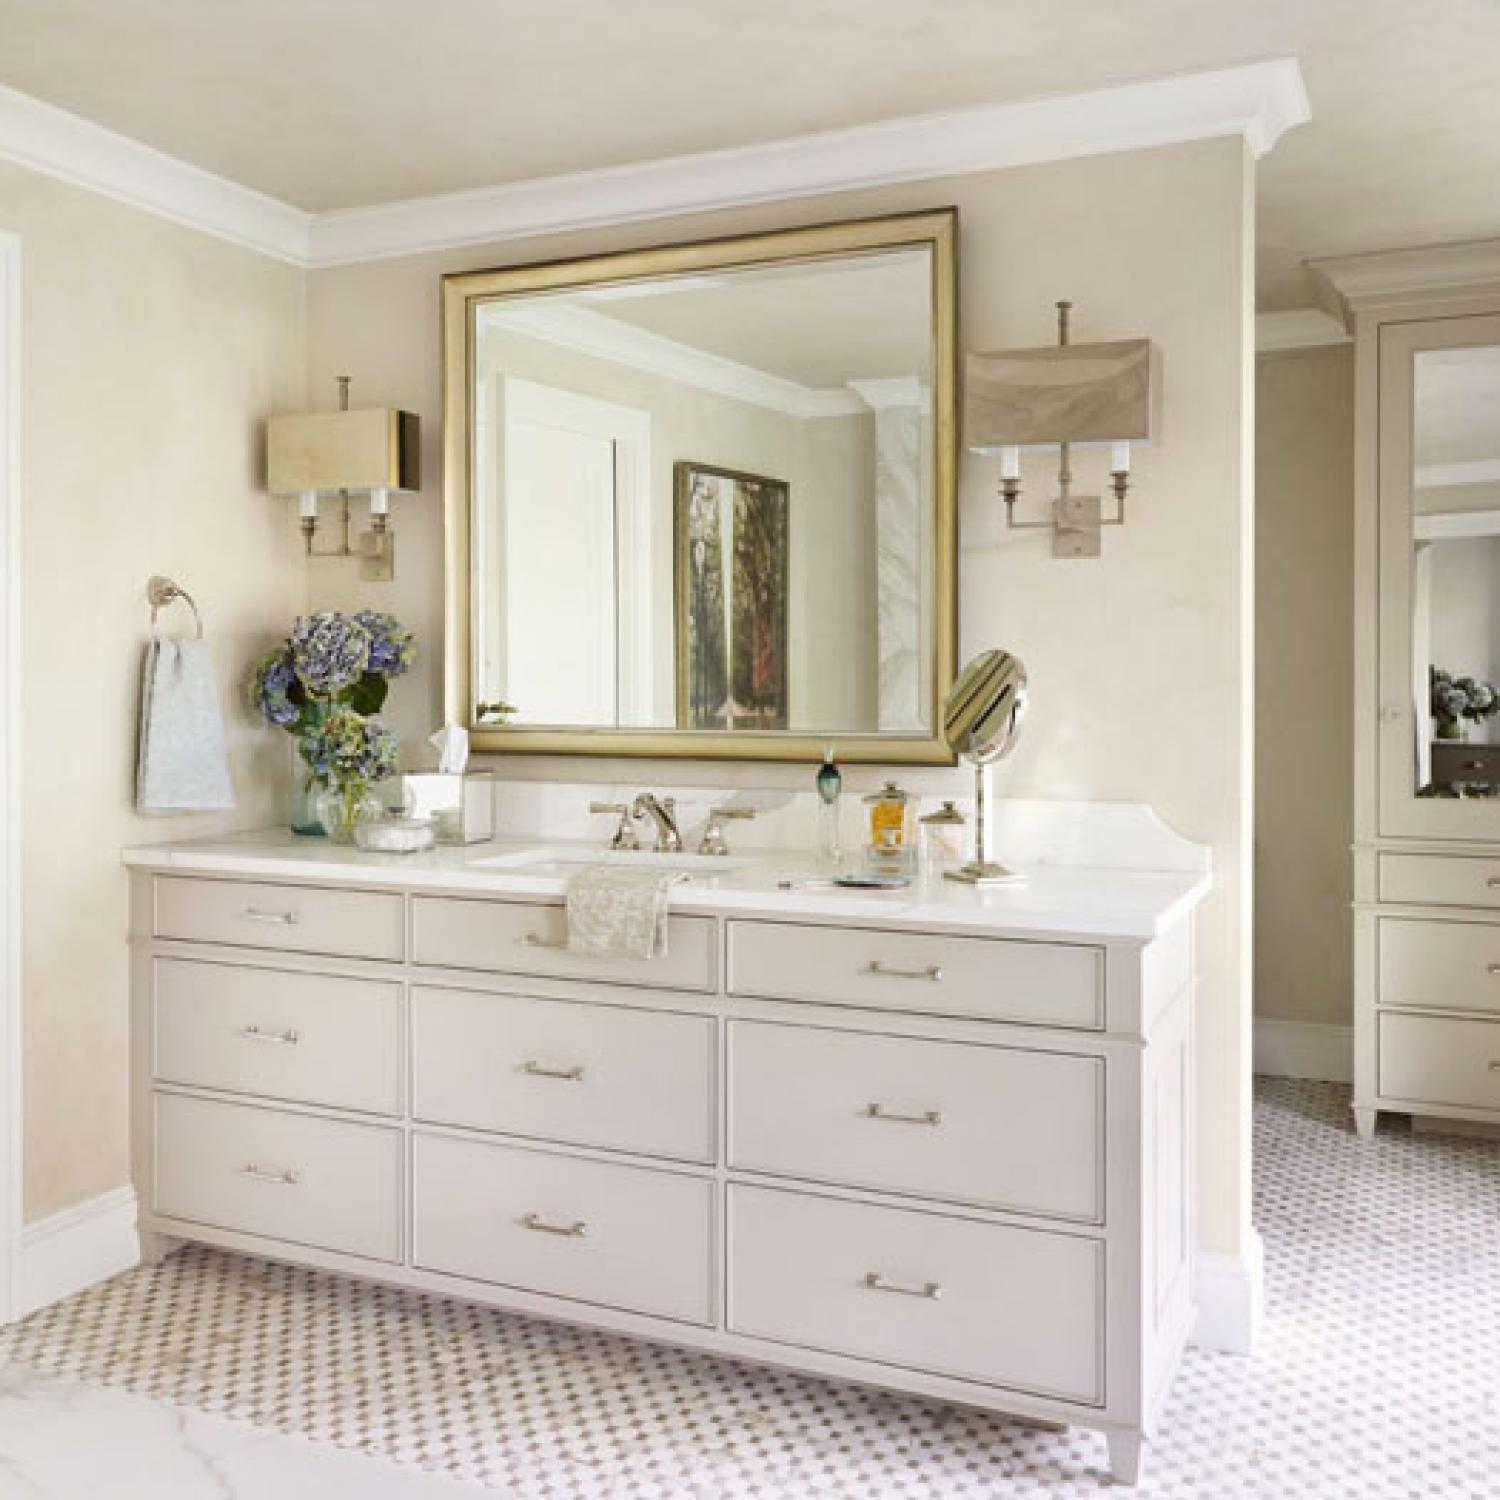 Decorating bath vanities traditional home - How to redo bathroom cabinets for cheap ...